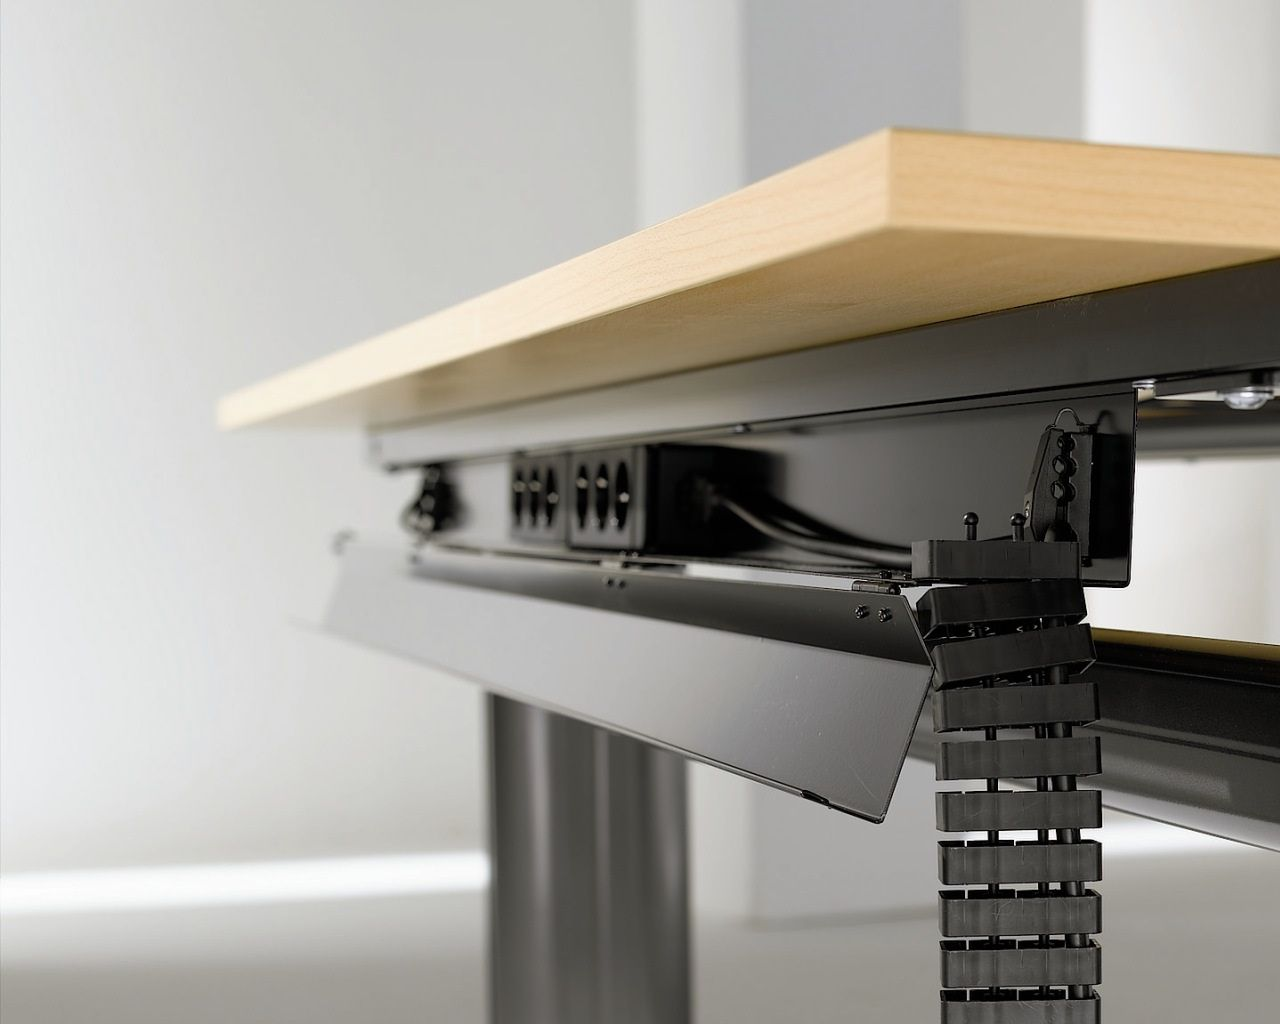 office desk cable management. Office Desk Cable Management - Luxury Home Furniture Check More At Http:// Pinterest